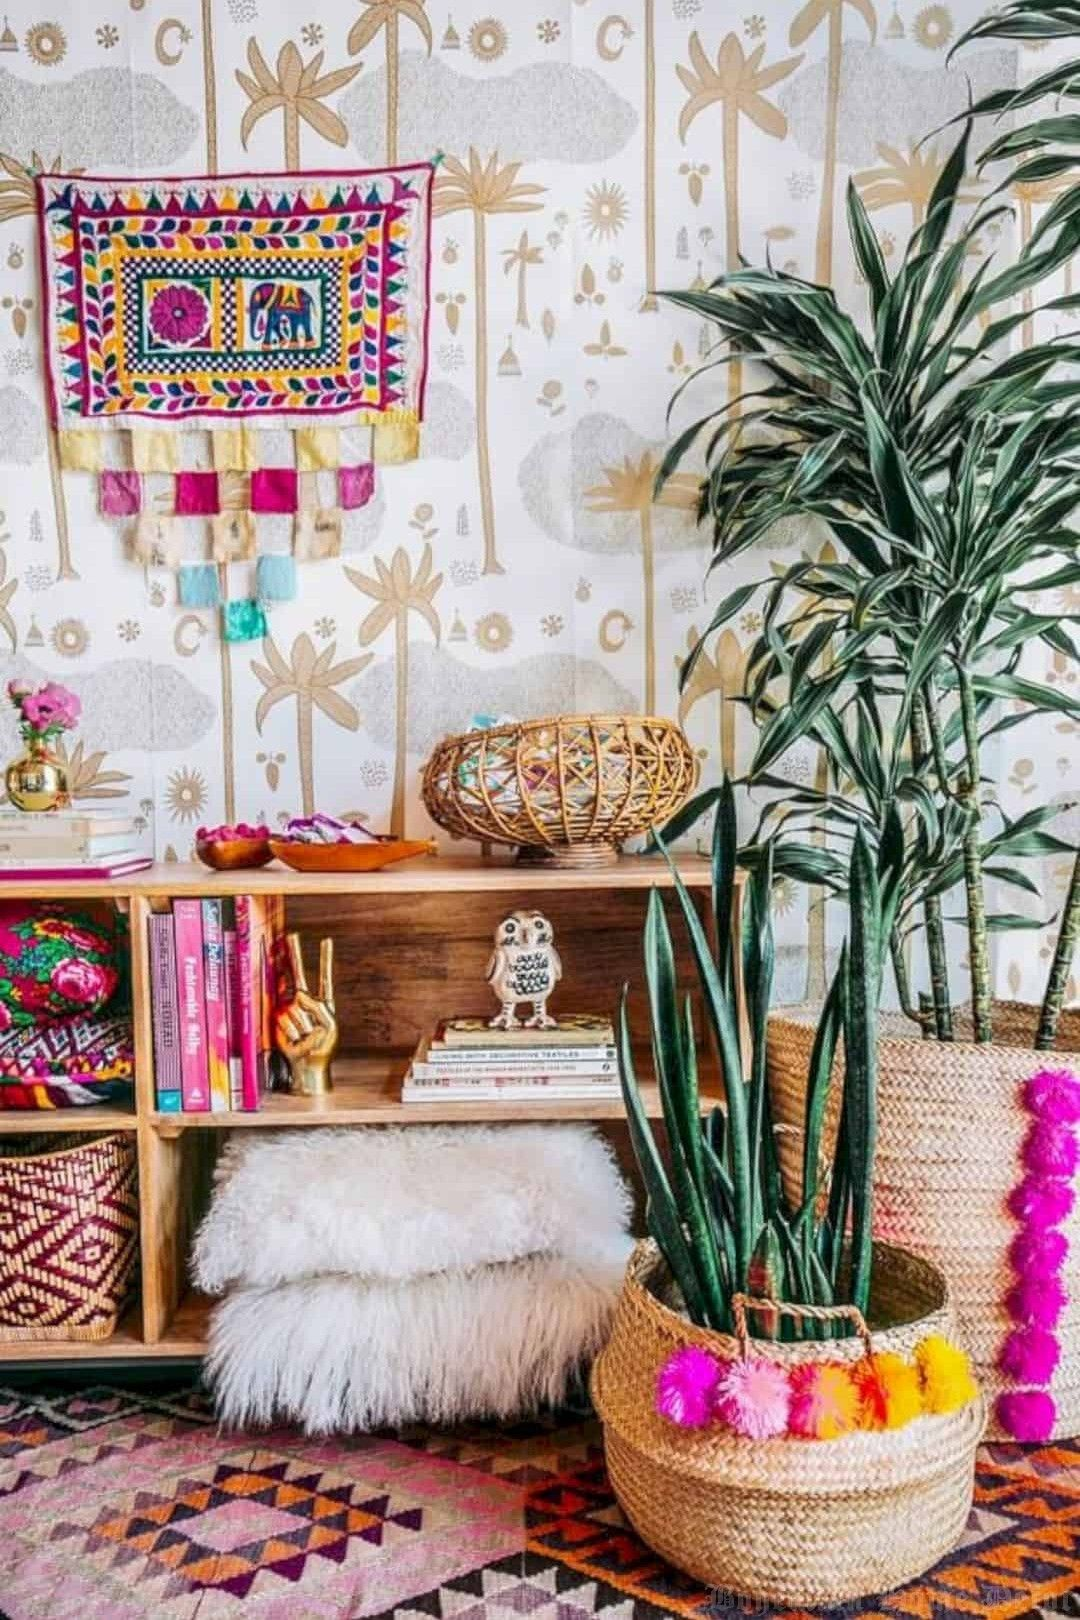 How To Quit Bohemian Home Decor In 5 Days